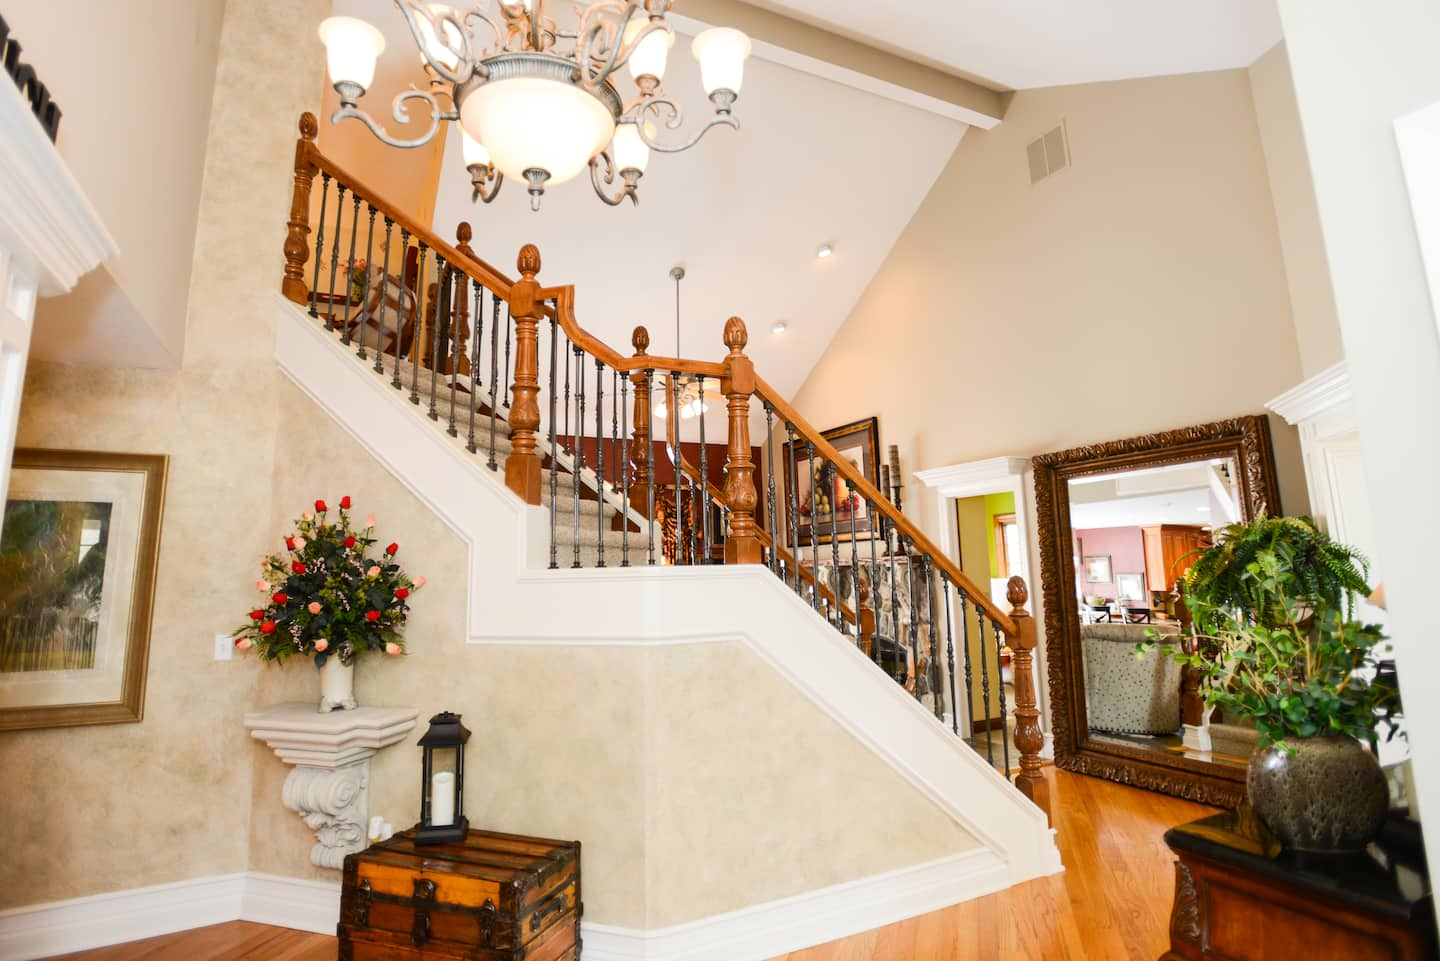 rod iron railing for interior and exterior decorations.htm how to decorate a grand entrance angie s list  how to decorate a grand entrance